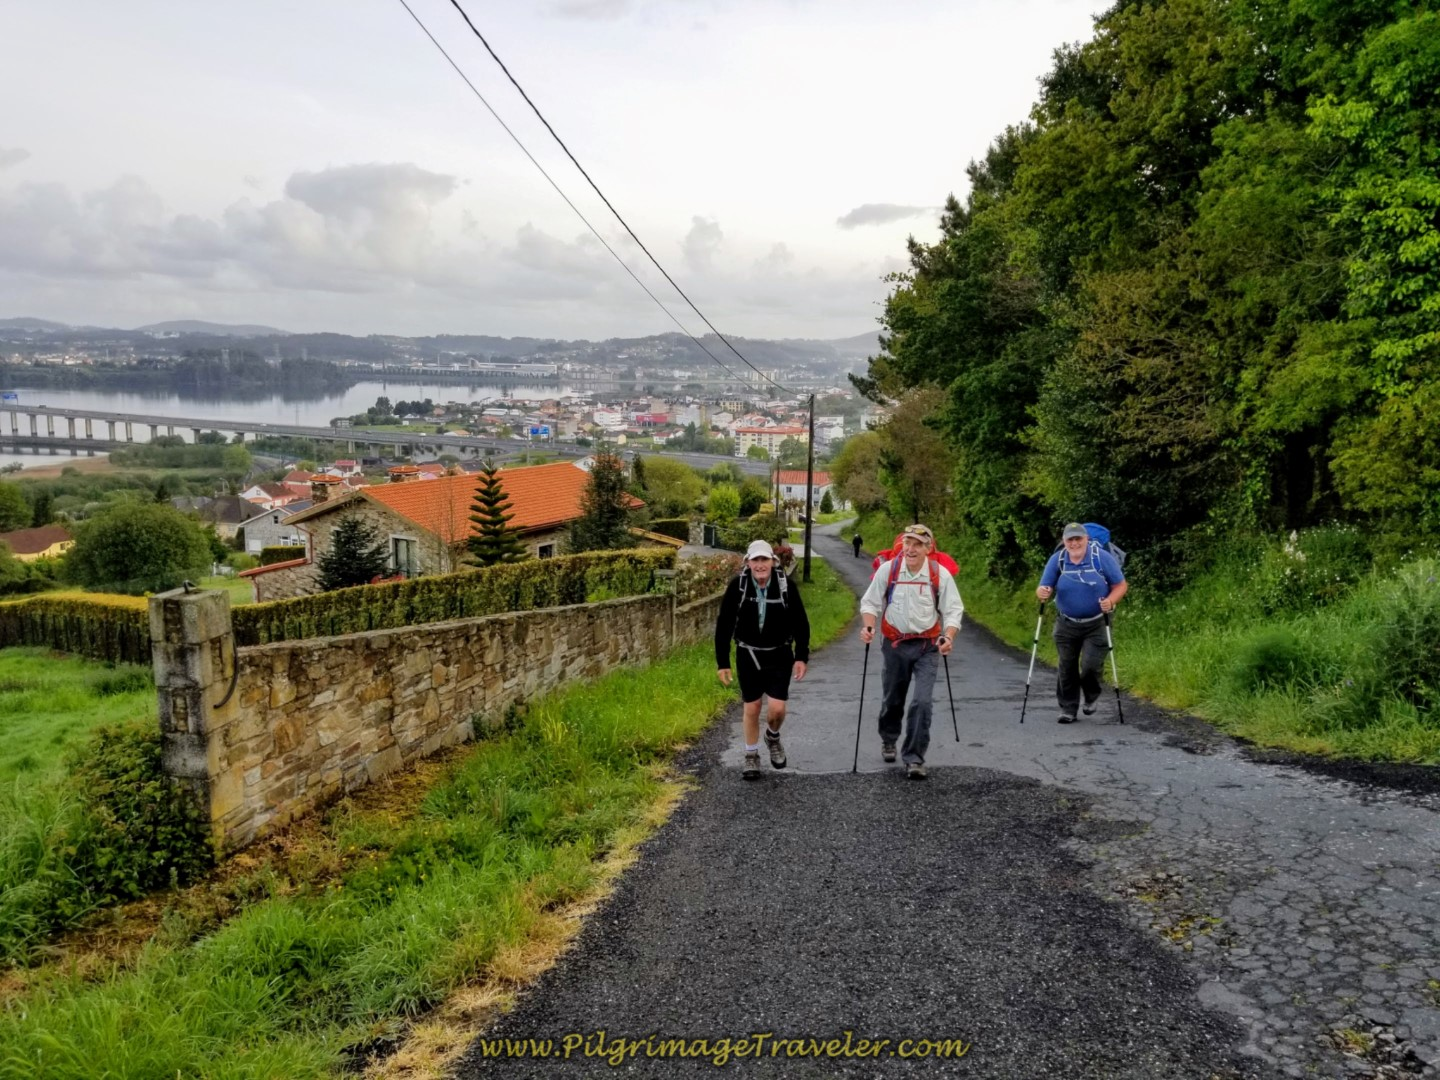 Nearing the Top in Silva on day two of the Camino Inglés